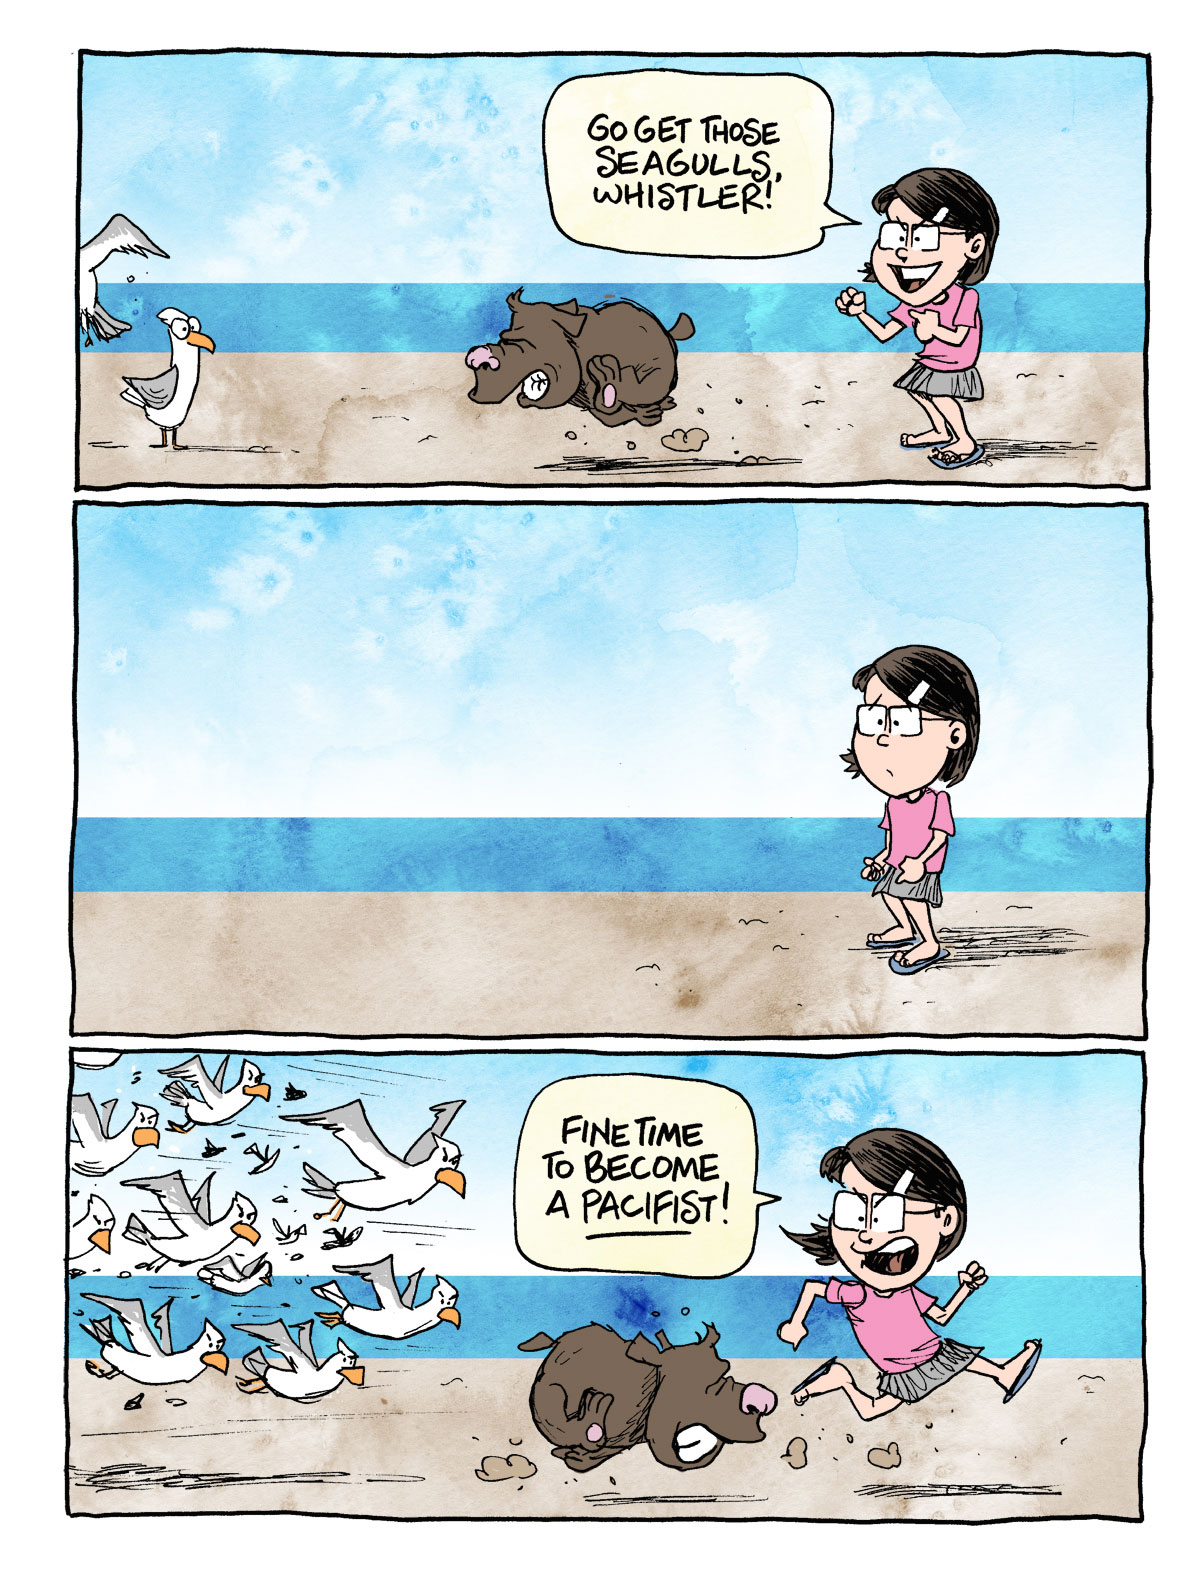 20150609-Seagulls-FINAL-for-web